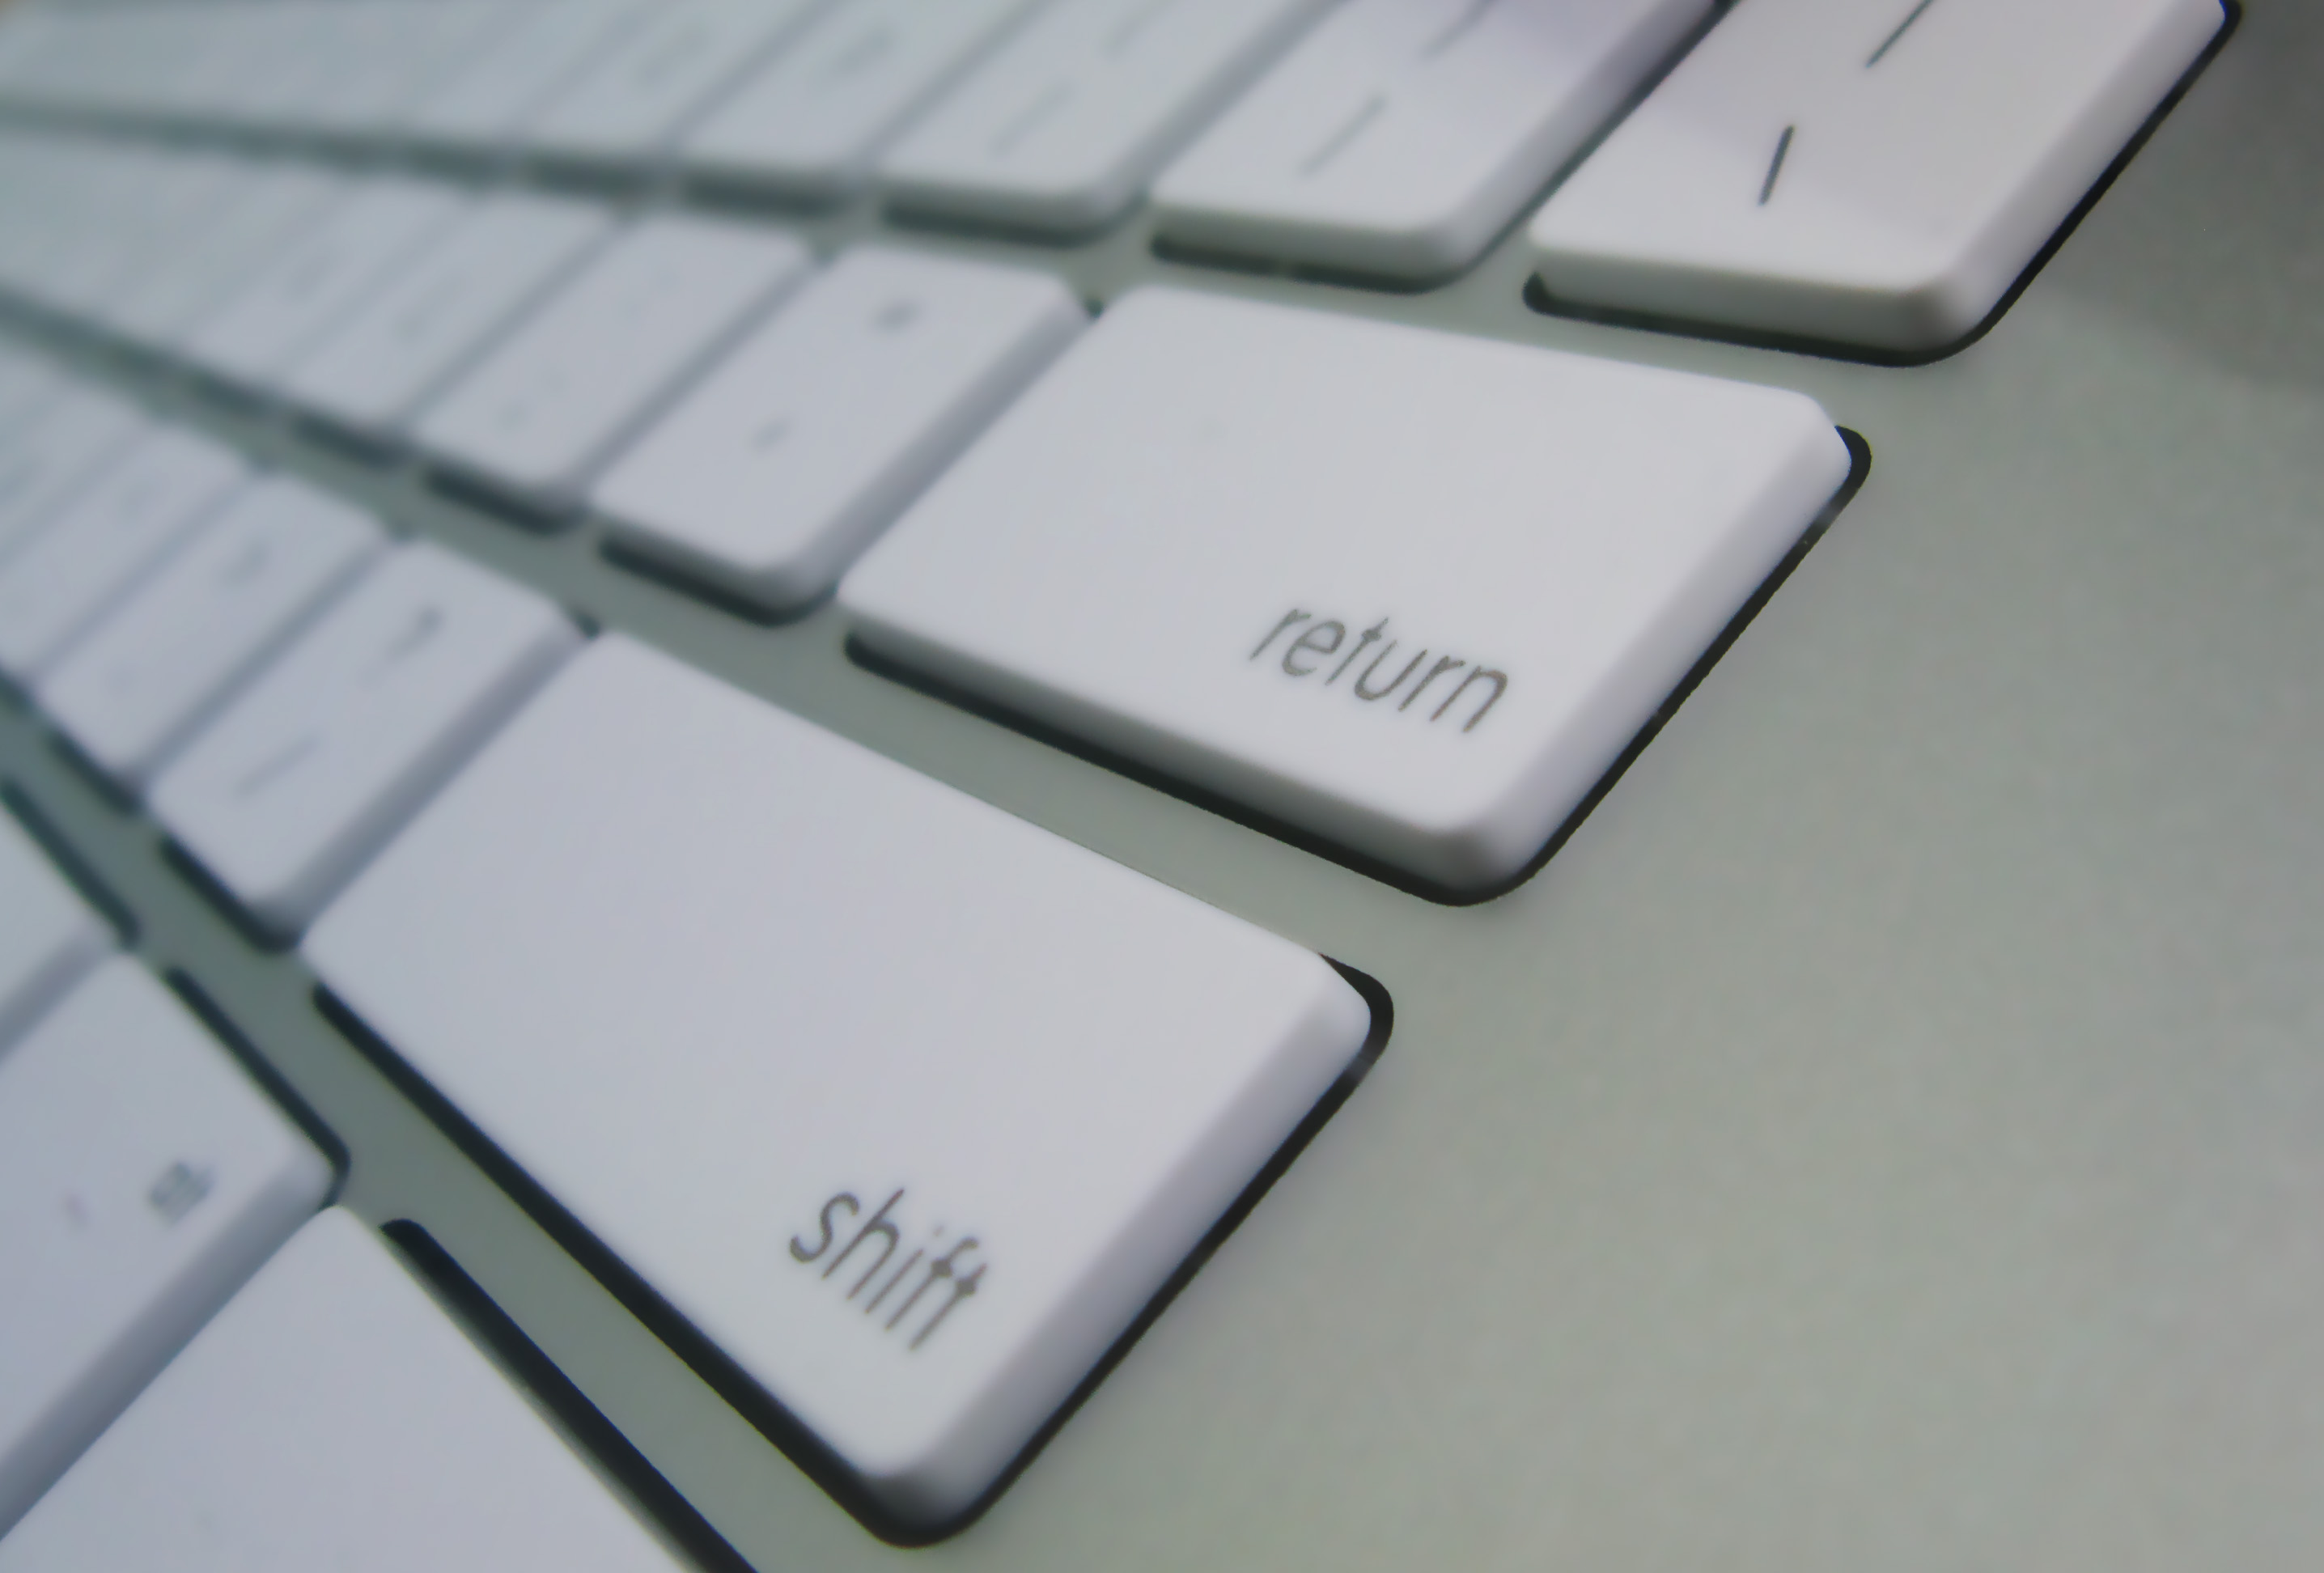 Apple Blocks Java 7 on OS X to Protect Mac Users